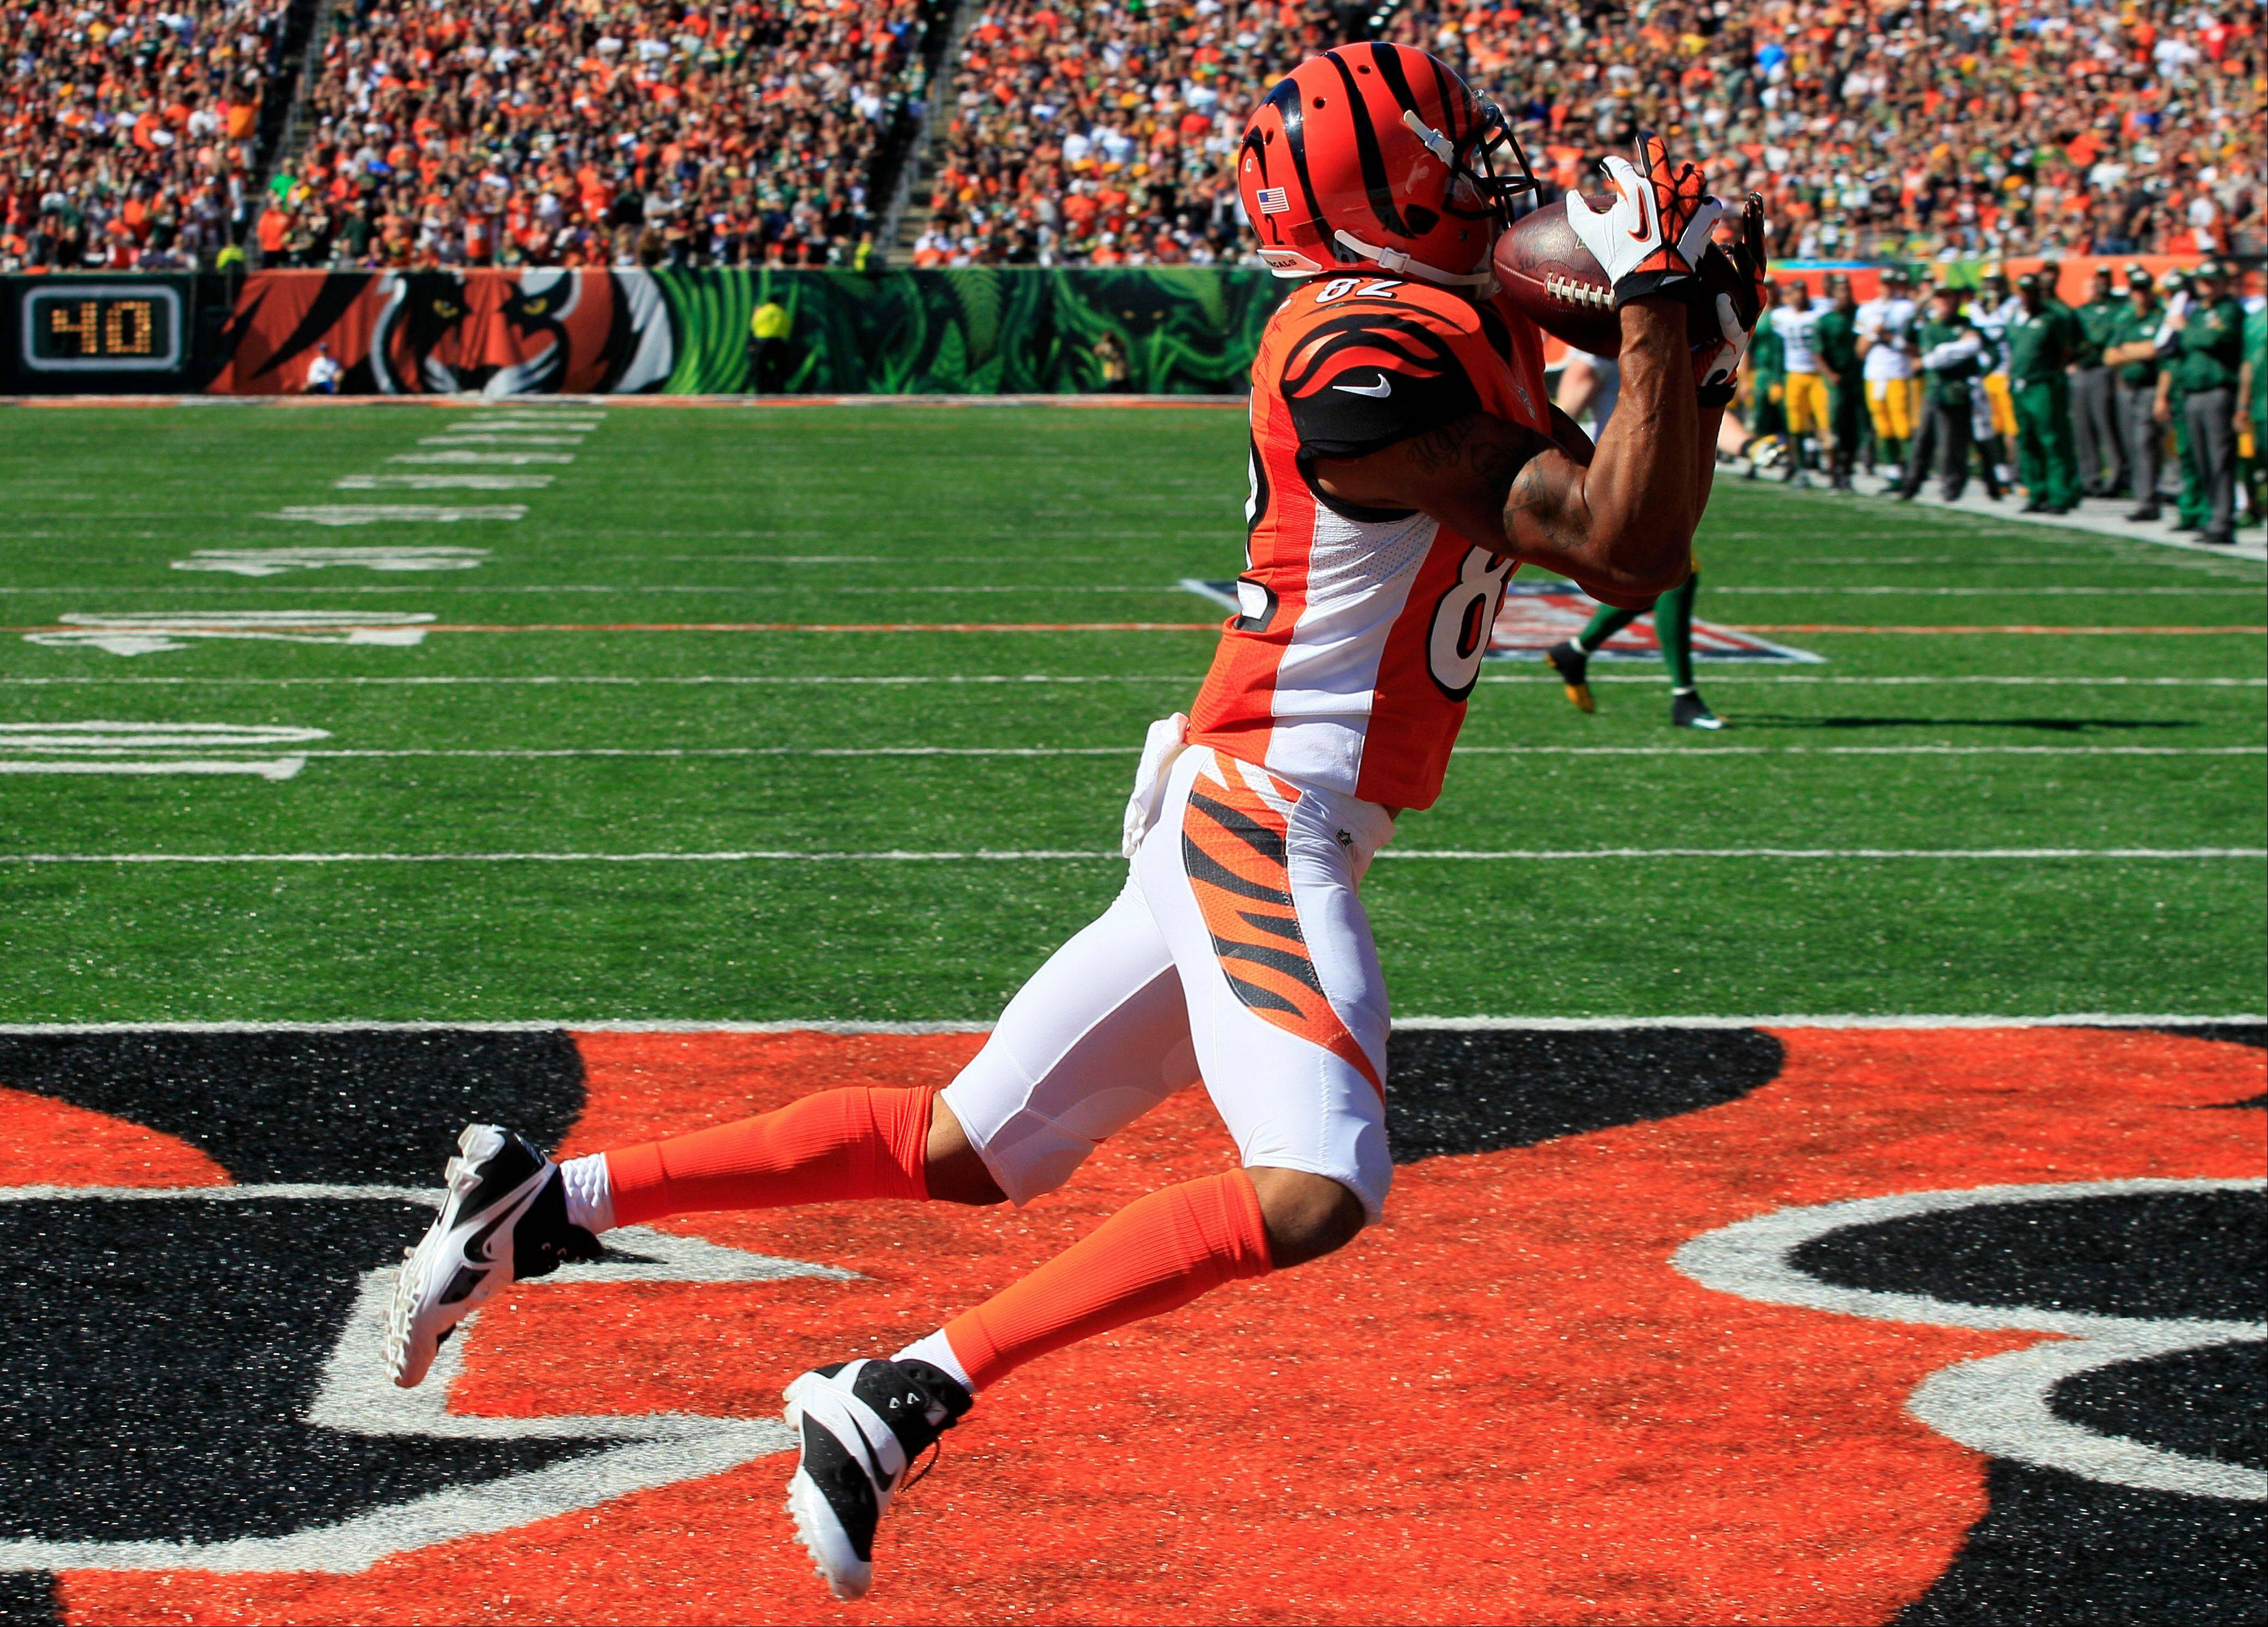 Cincinnati Bengals wide receiver Marvin Jones catches an 11-yard touchdown pass against the Green Bay Packers in the second half of an NFL football game, Sunday, Sept. 22, 2013, in Cincinnati.